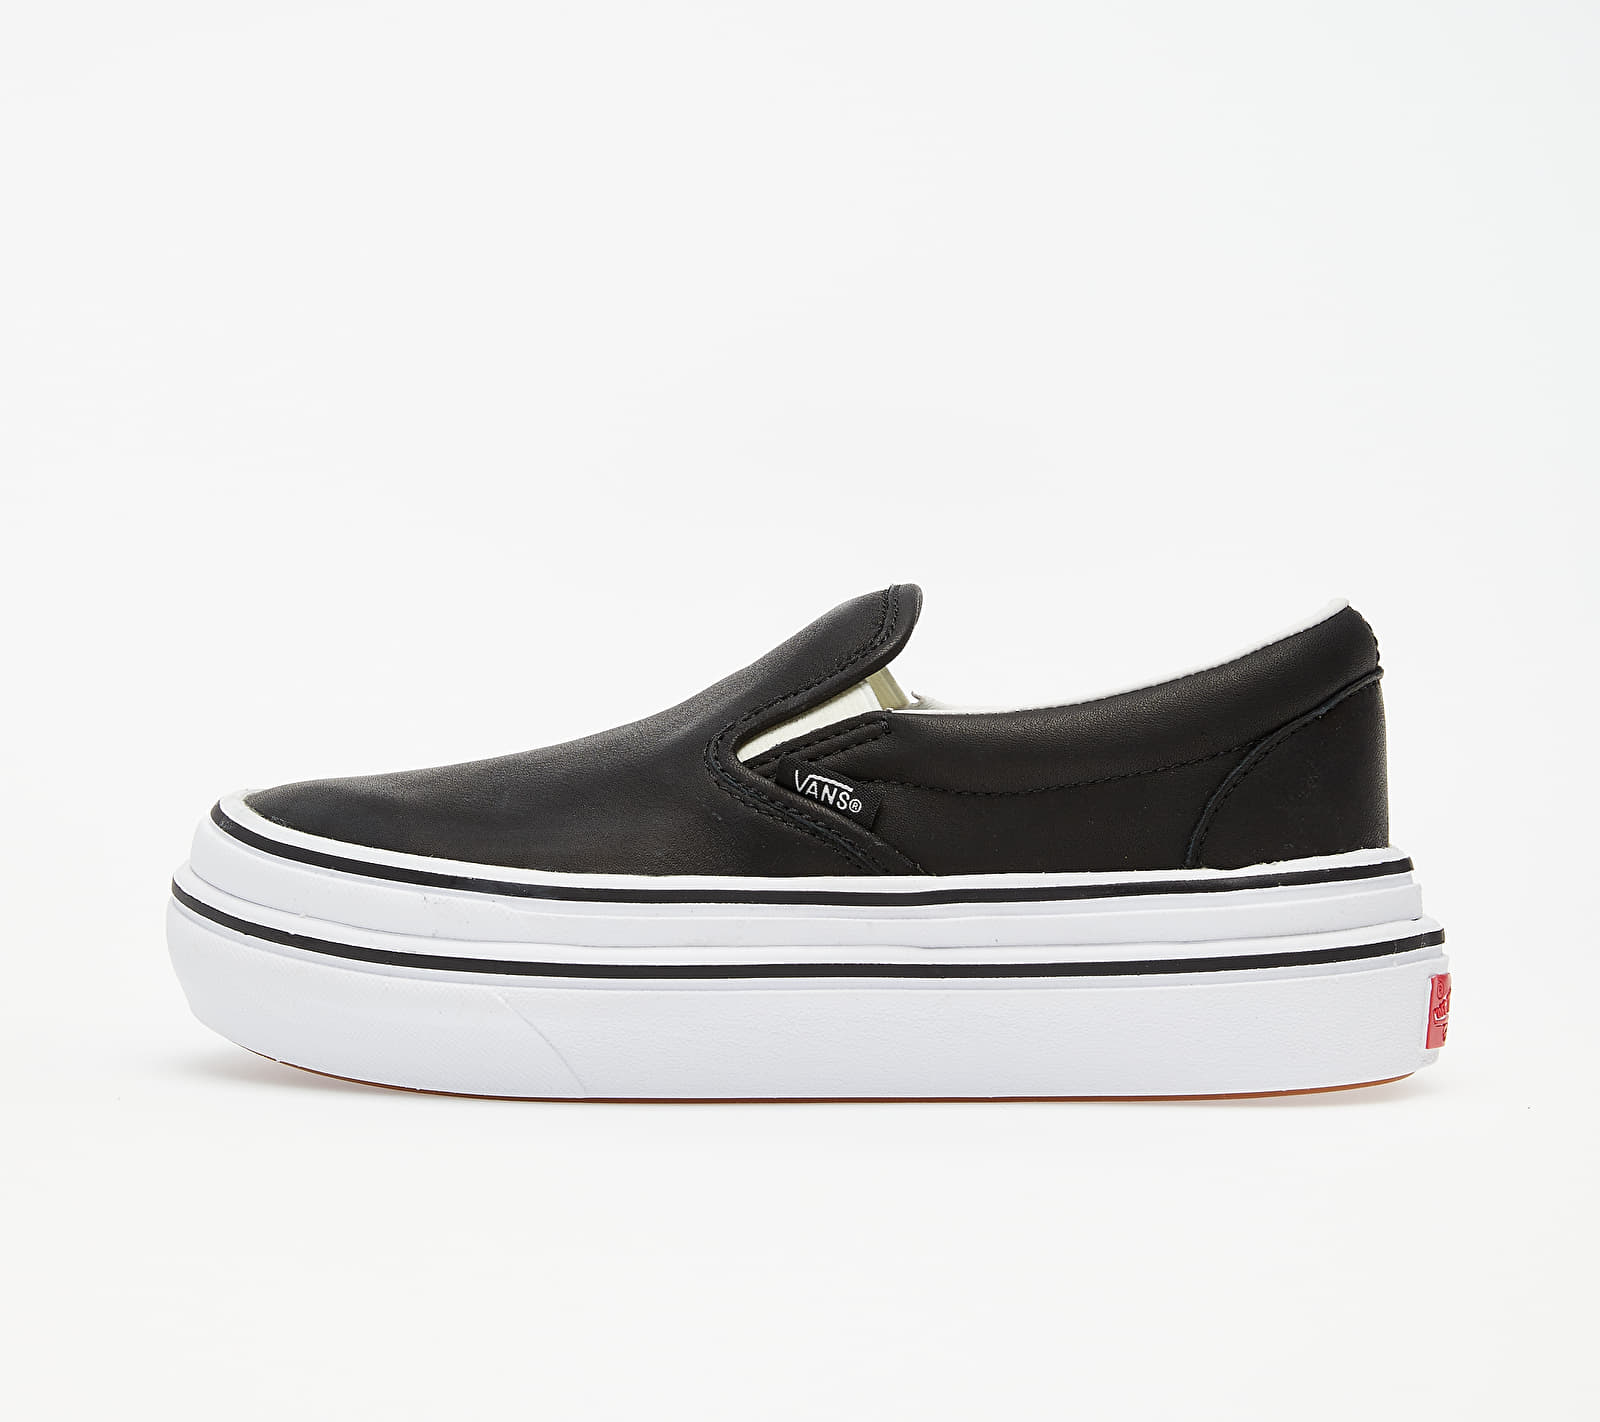 Vans Super Comfycush Slip-On (Leather) Black VN0A4U3IL3A1